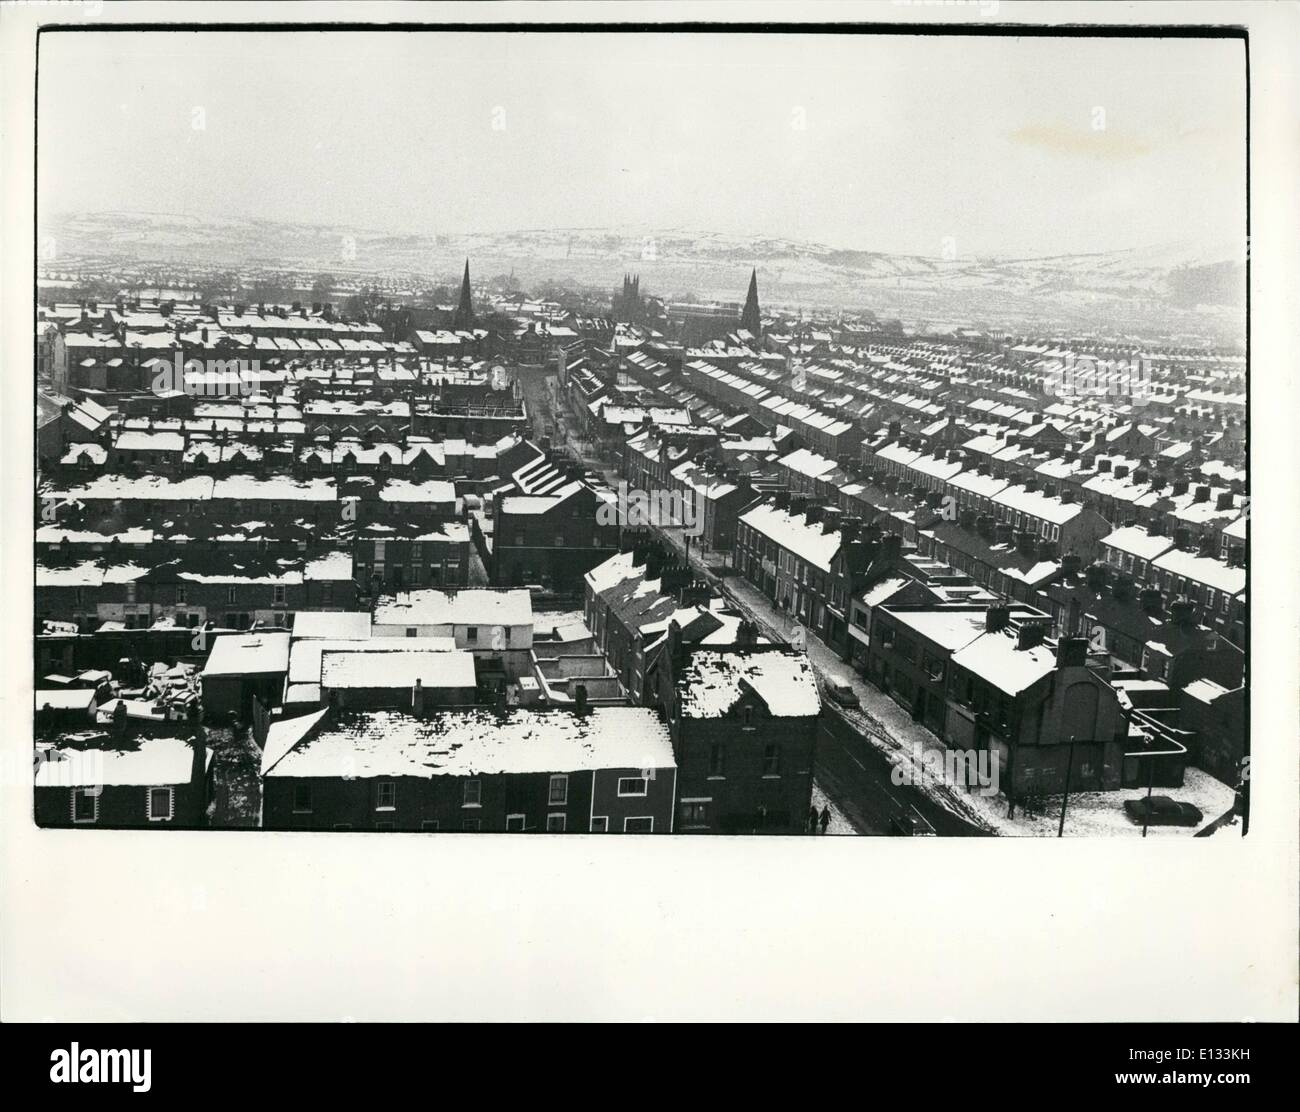 Feb. 26, 2012 - Looking over the Stronghold Catholic area of New Lodge Road in Belfast - Stock Image